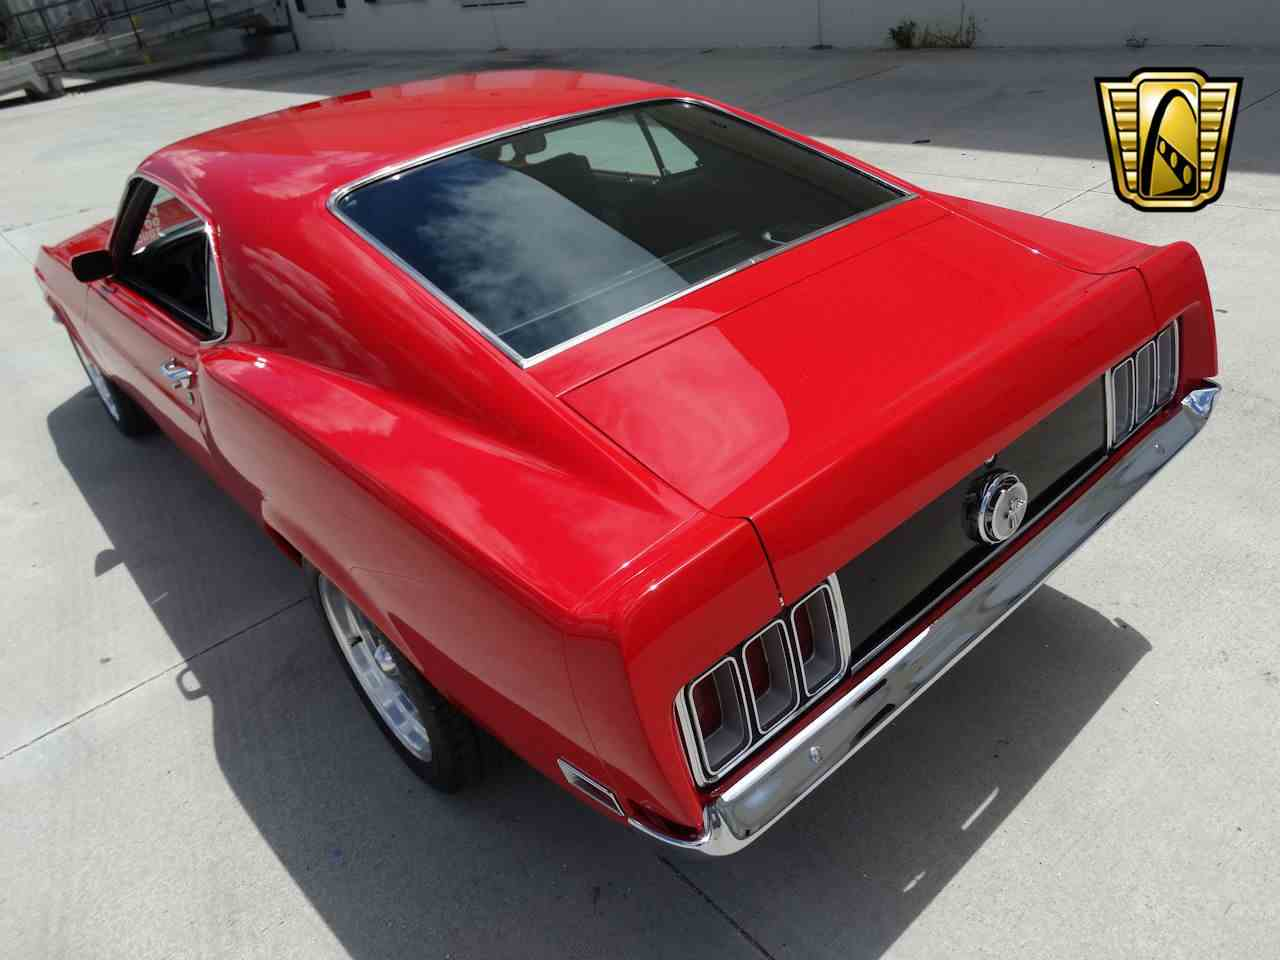 Large Picture of '70 Ford Mustang located in Florida Offered by Gateway Classic Cars - Fort Lauderdale - LG4A